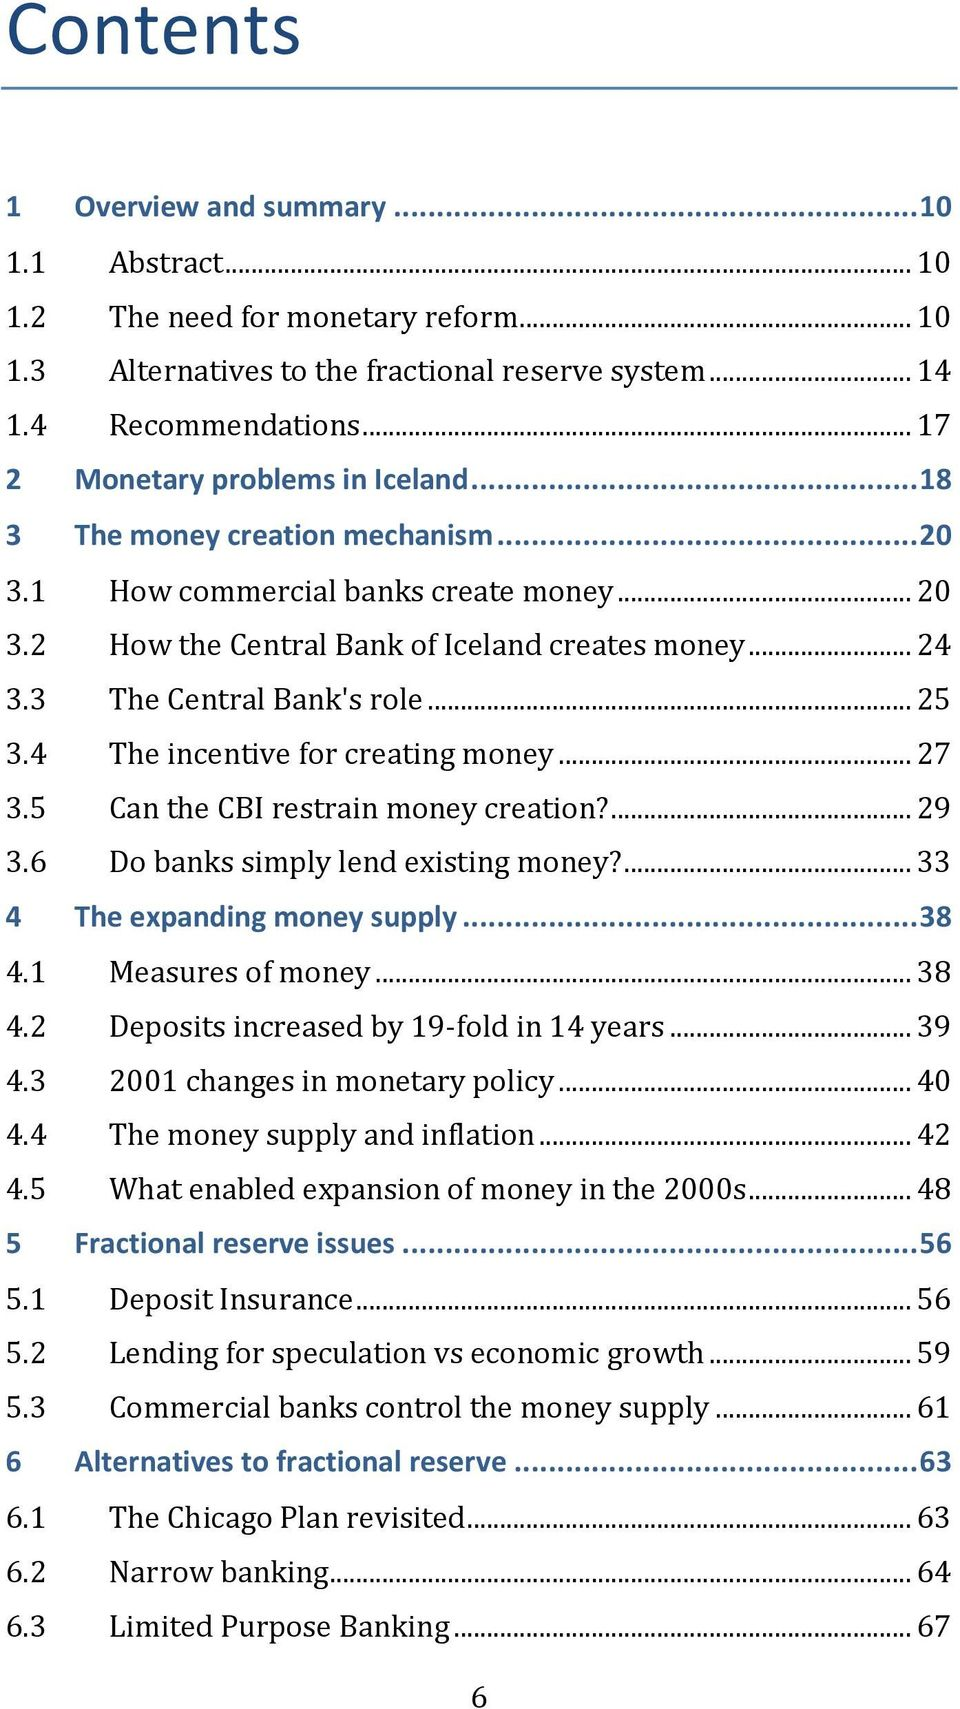 3 The Central Bank's role... 25 3.4 The incentive for creating money... 27 3.5 Can the CBI restrain money creation?... 29 3.6 Do banks simply lend existing money?... 33 4 The expanding money supply.